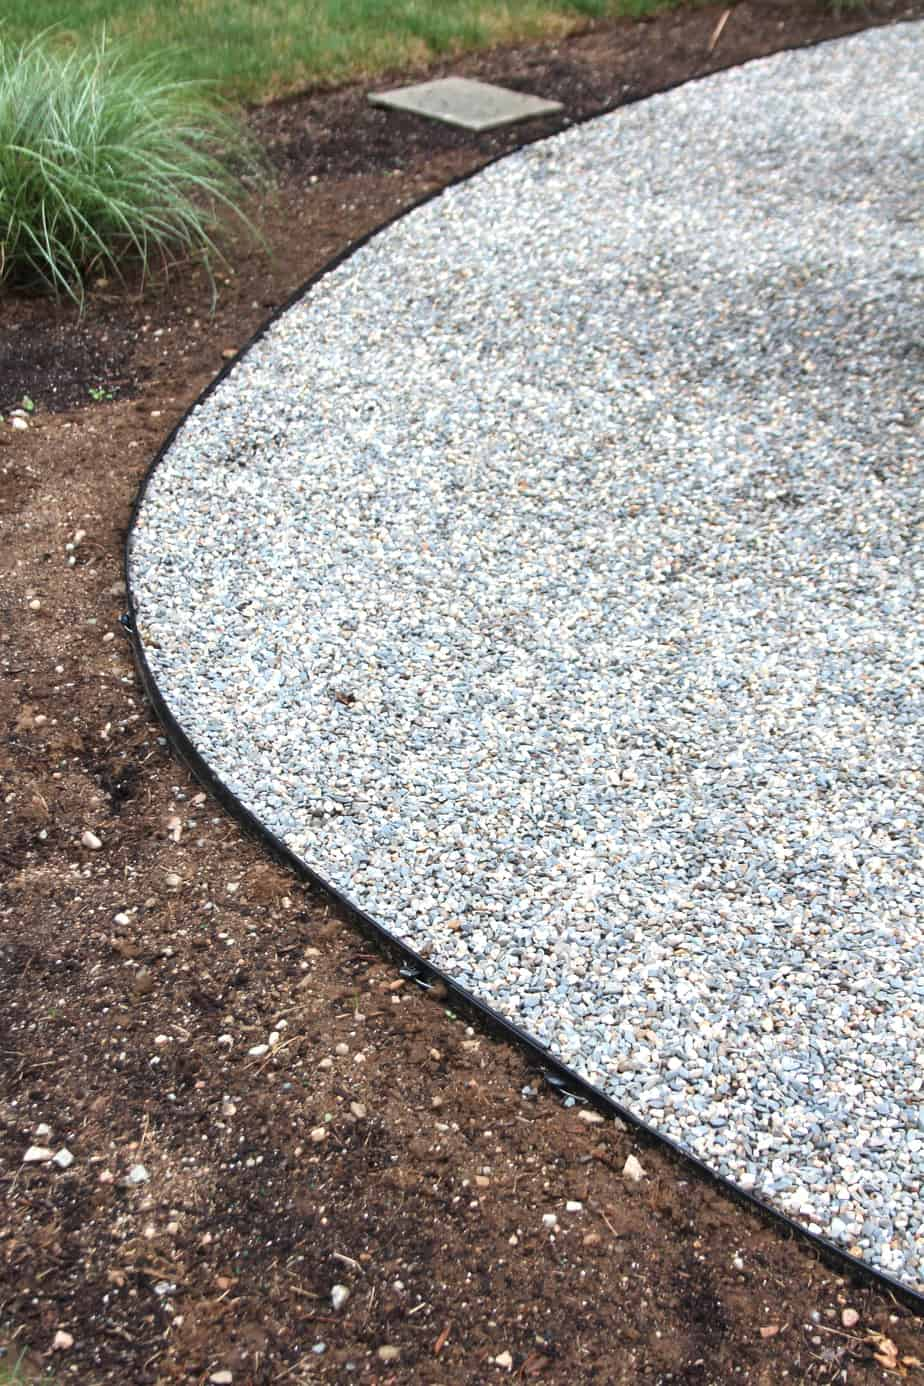 Metal edging keeps landscaping materials neat.